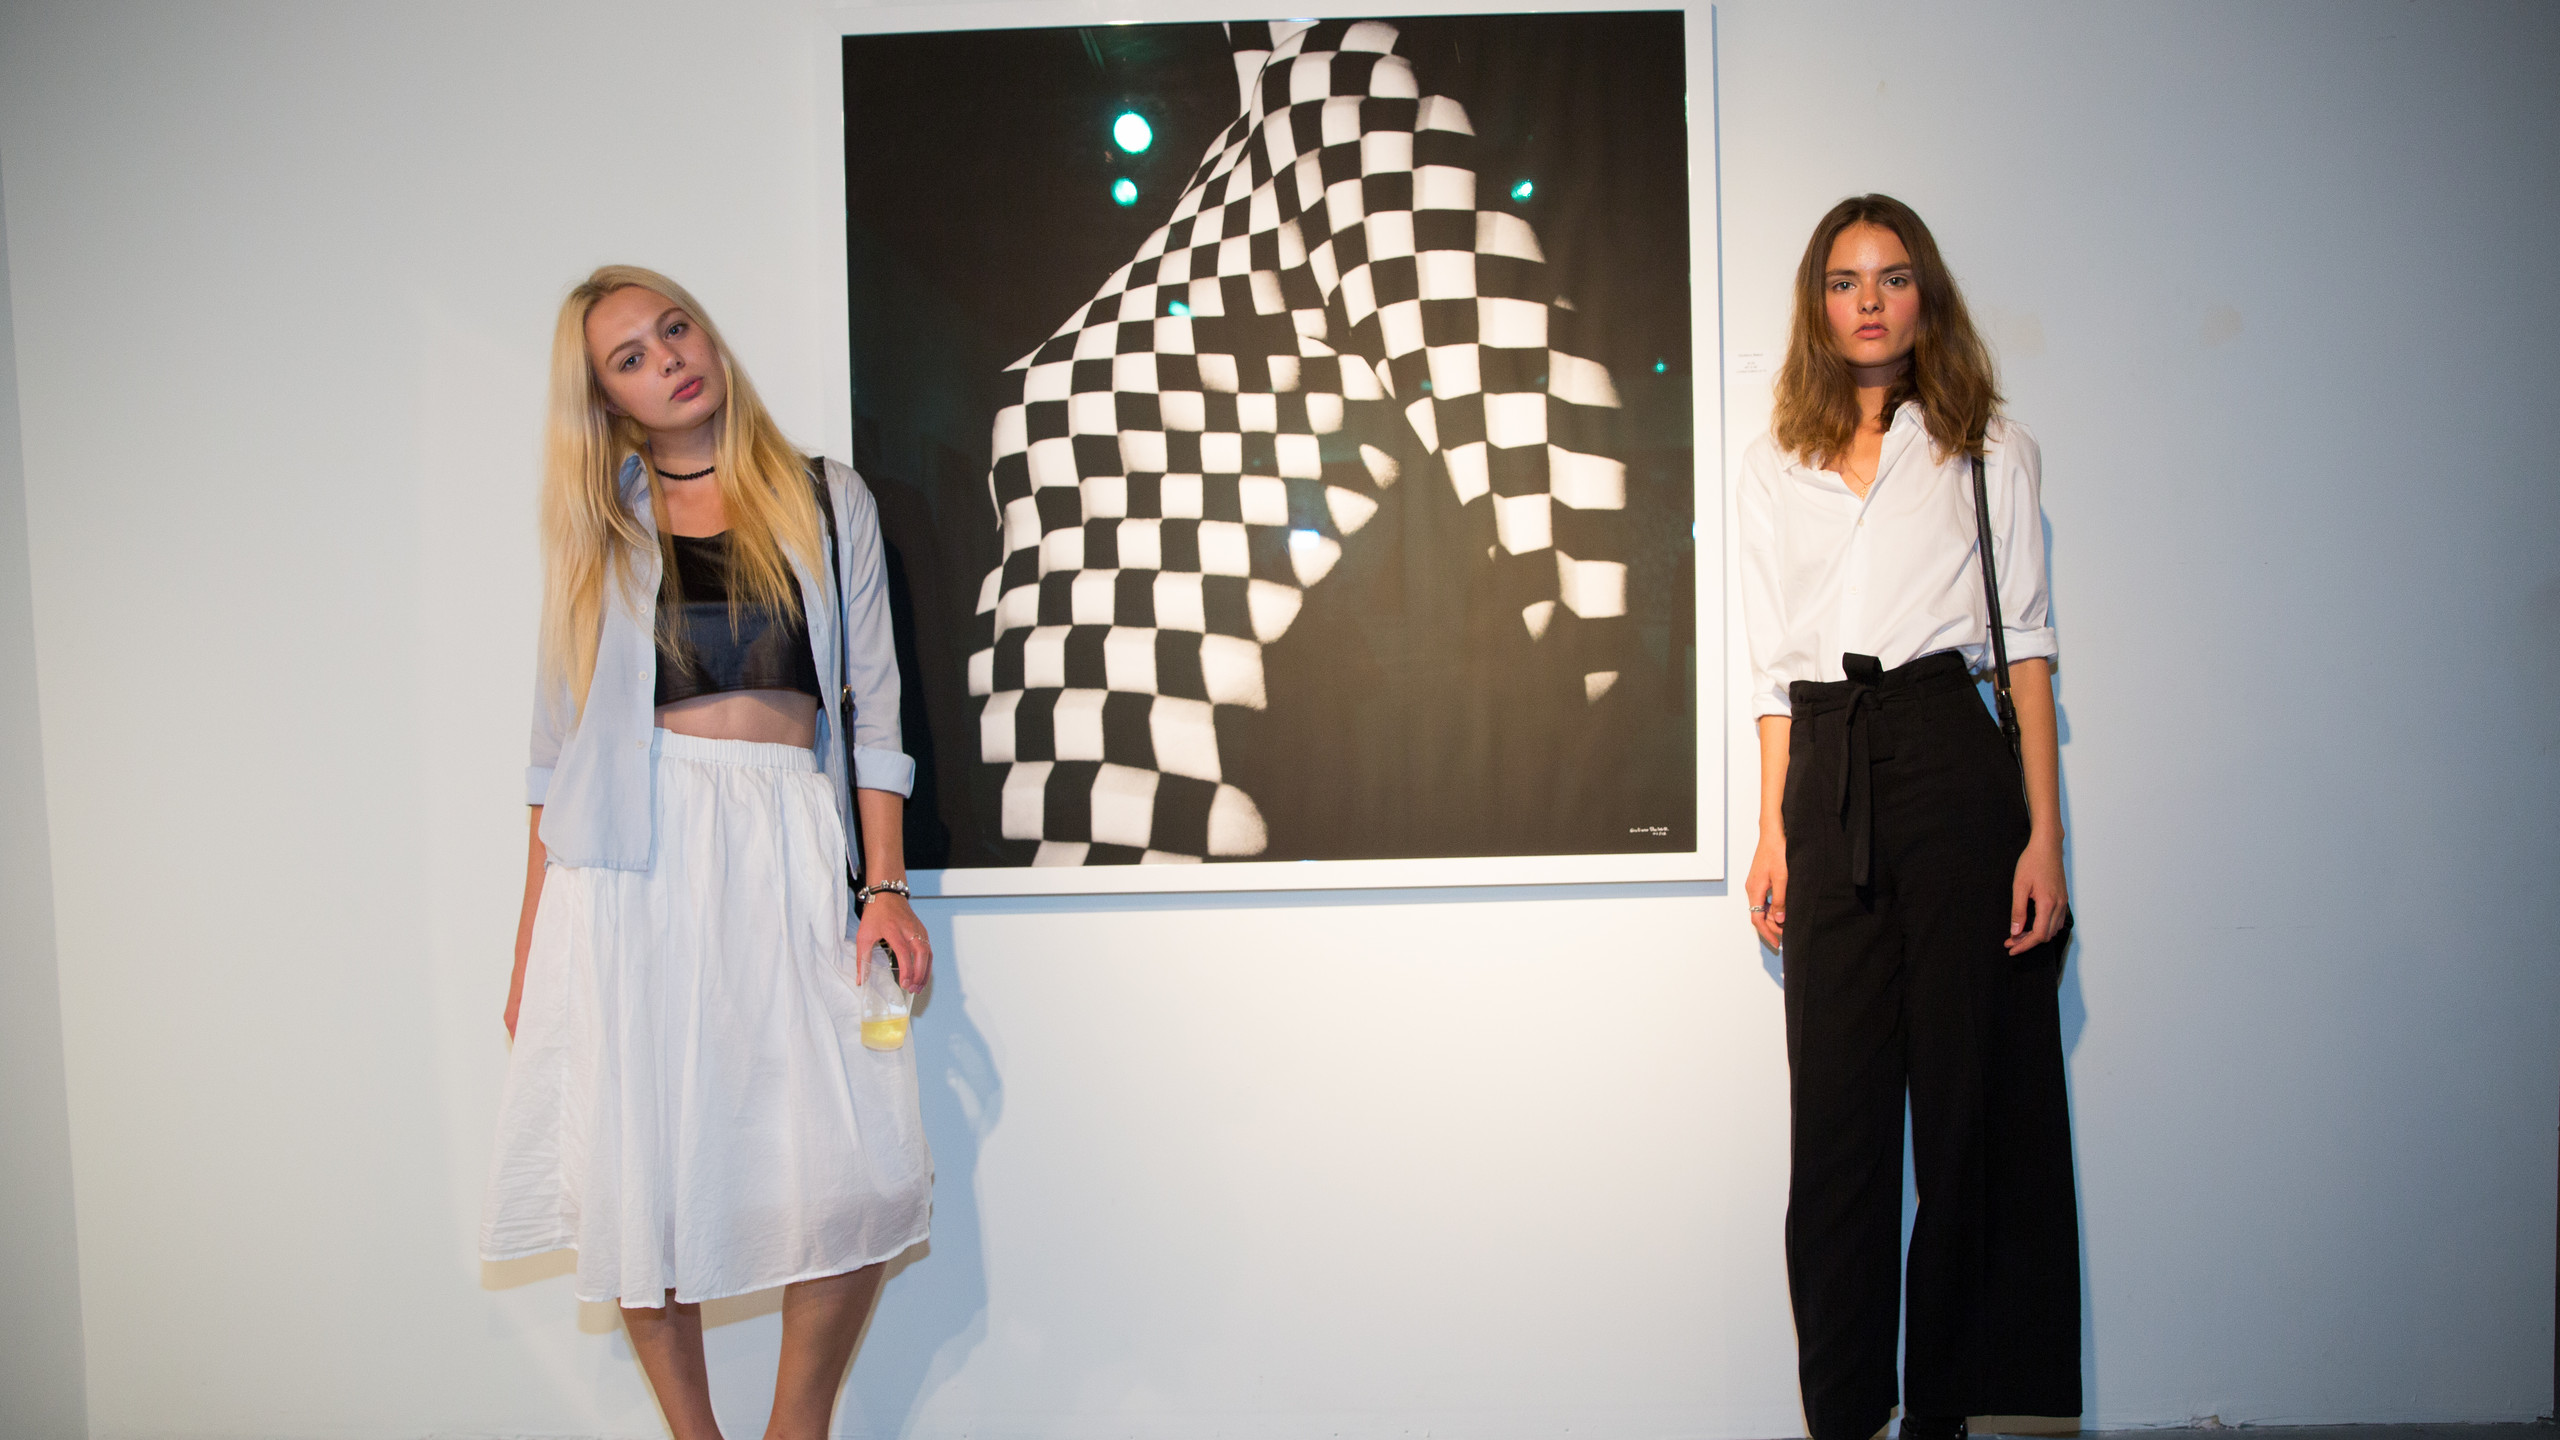 Guests in front of work of Giuliano Bekor